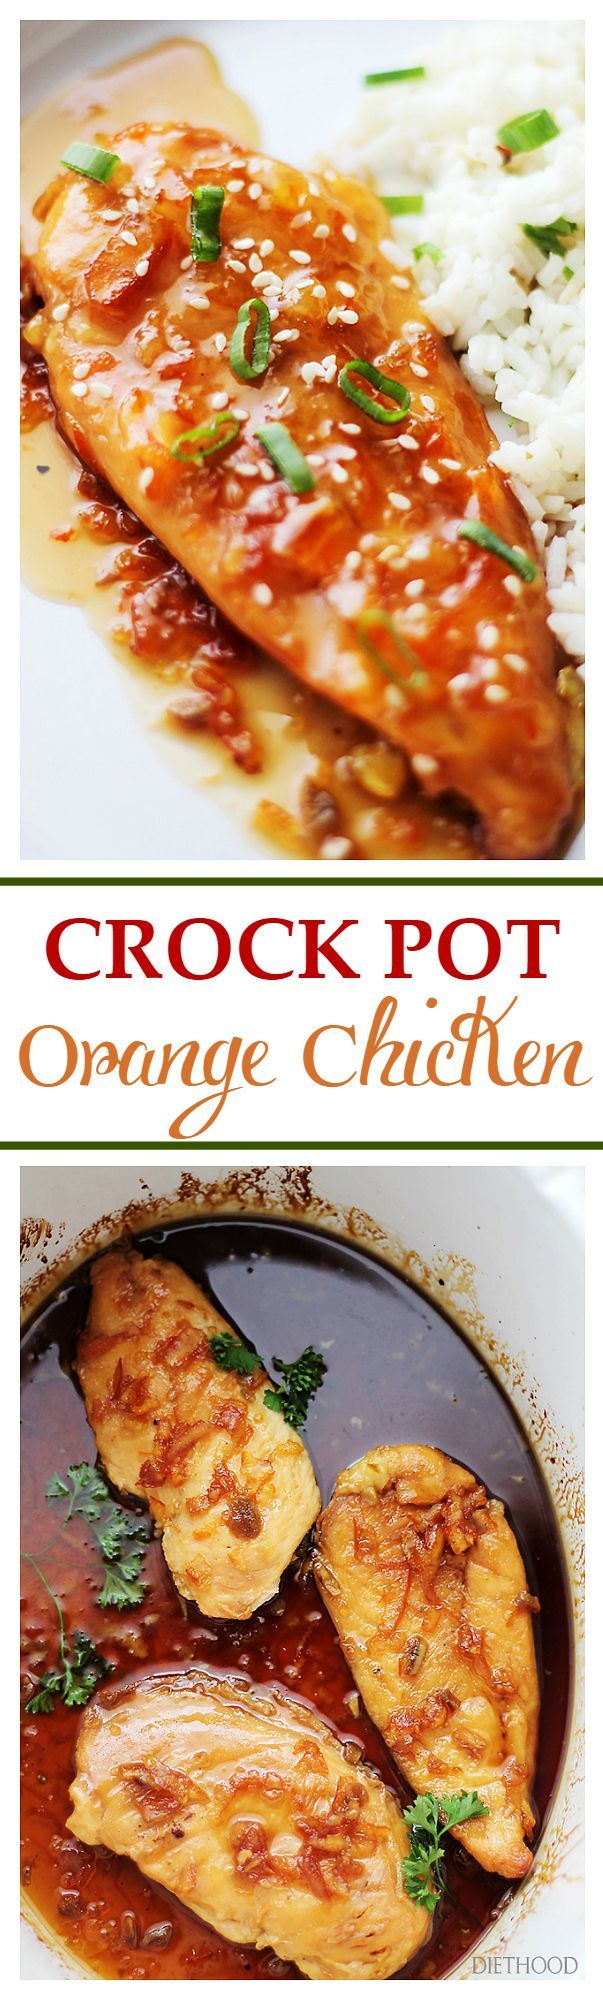 Crock Pot Orange Chicken   www.diethood.com   A delicious twist on the traditionally fried and breaded dish, this Orange Chicken is so flavorful, healthy, and it is cooked in the crock pot!   #chicken #crock_pot